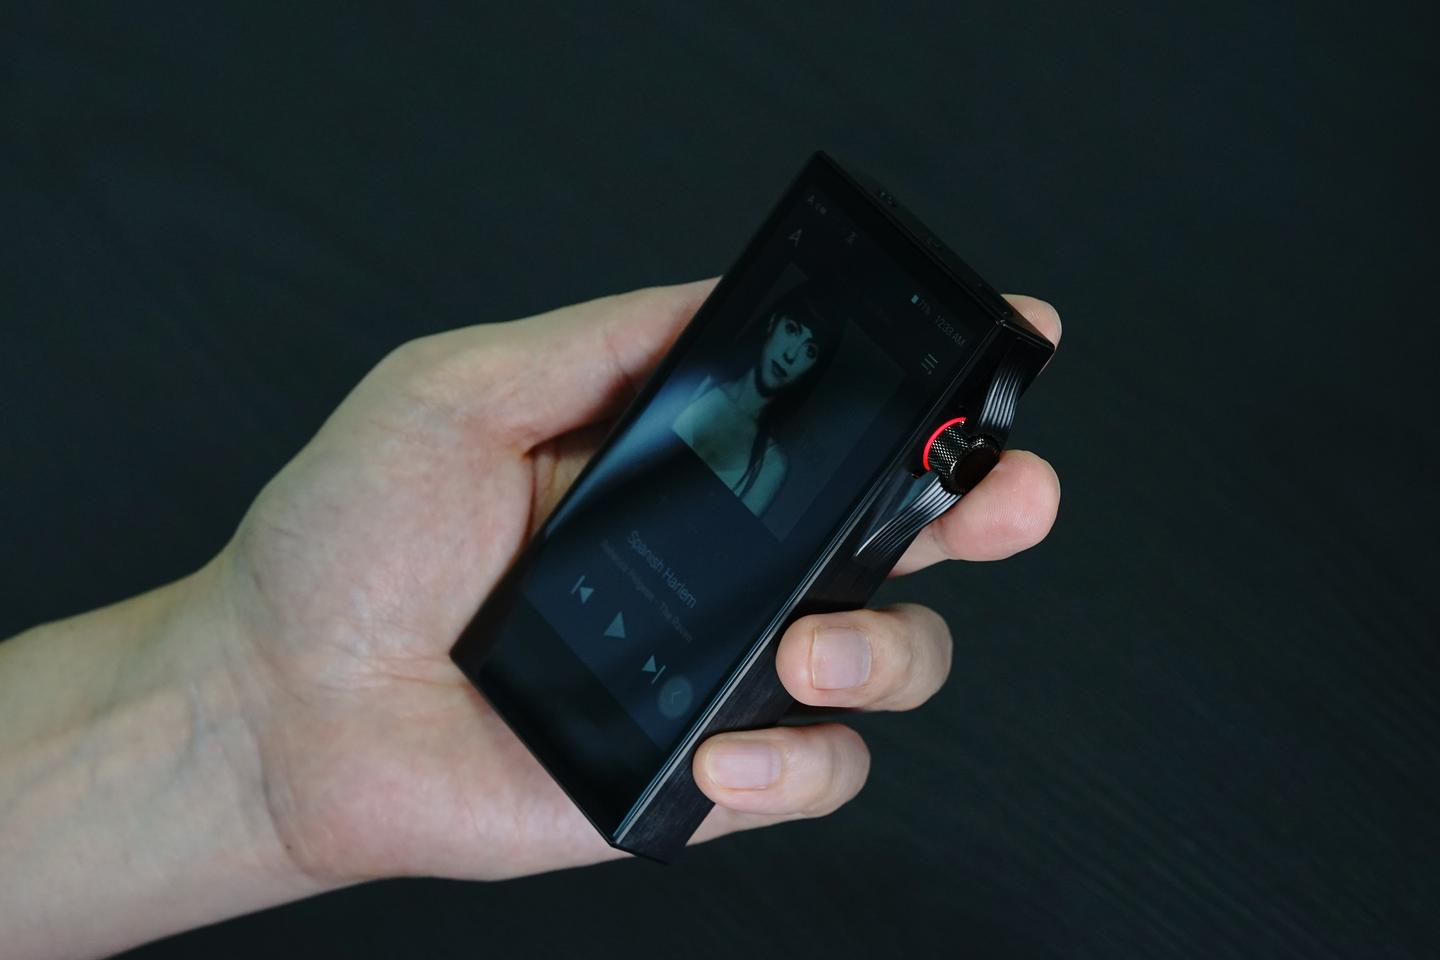 The SA700 portable music player features a 4.1-inch touchscreen and new user interface